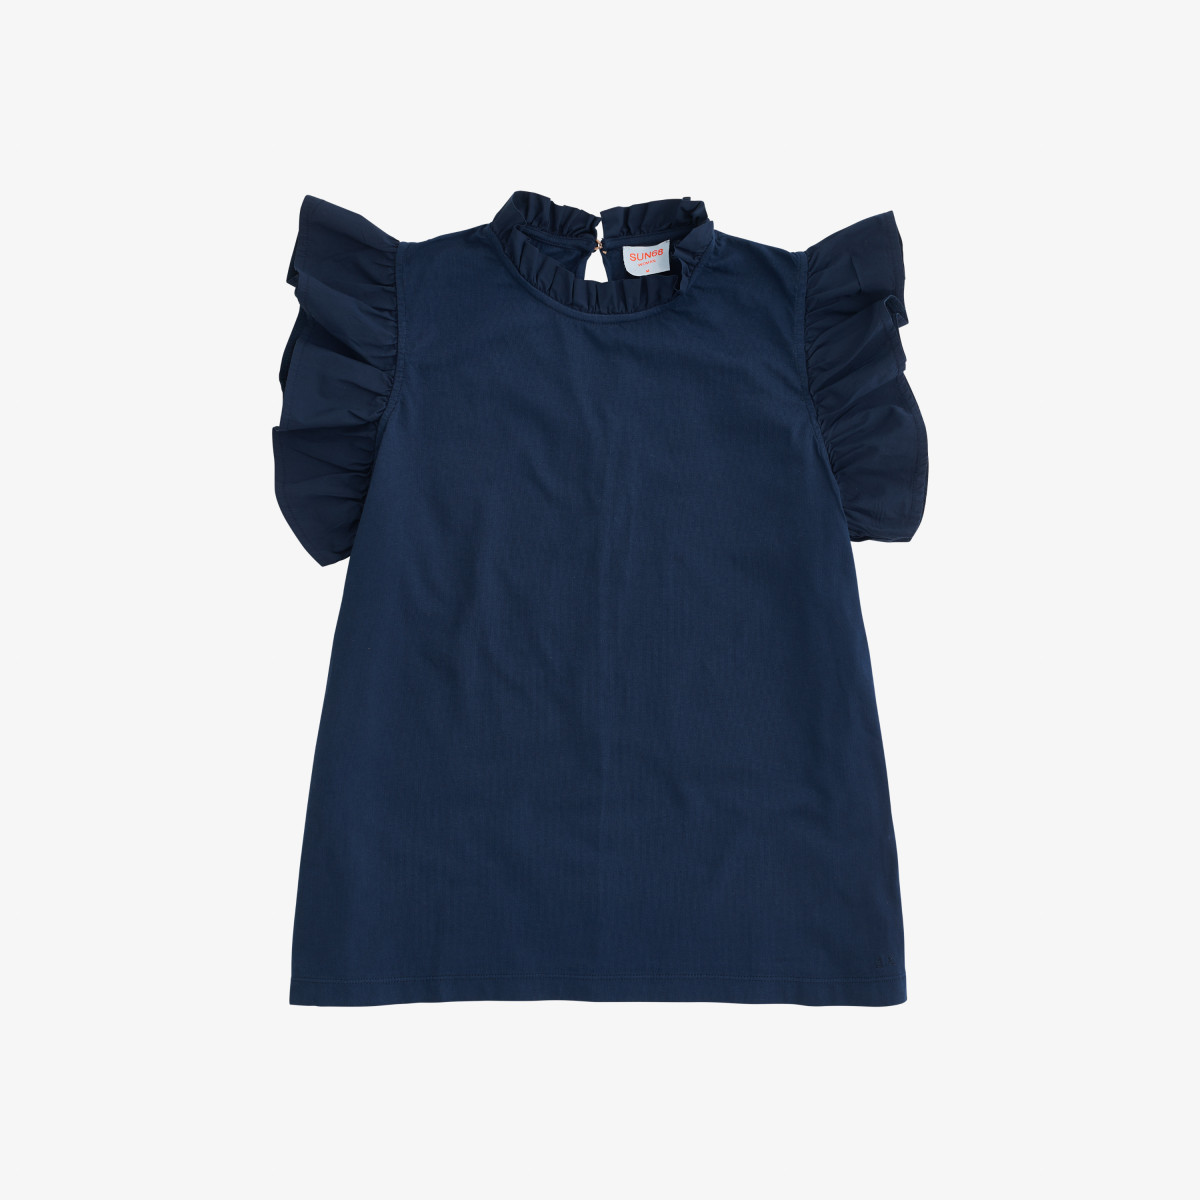 TOP ROUCHES MIX FABRIC NAVY BLUE